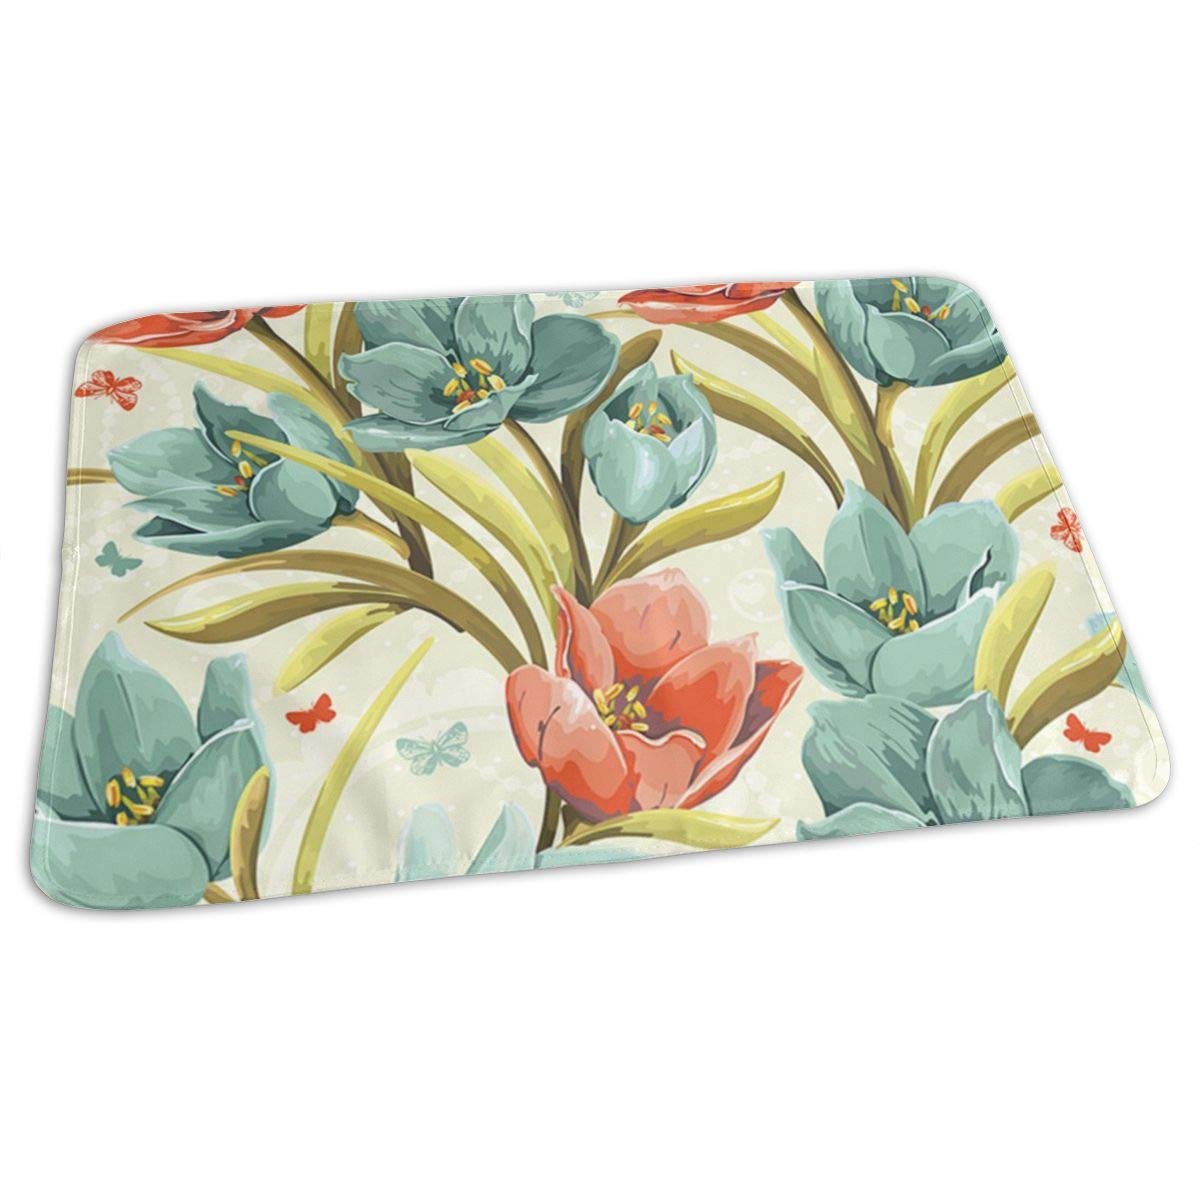 Osvbs Lovely Baby Reusable Waterproof Portable Beautiful Floral Background with Crocuses Changing Pad Home Travel 27.5''x19.7'' by Osvbs